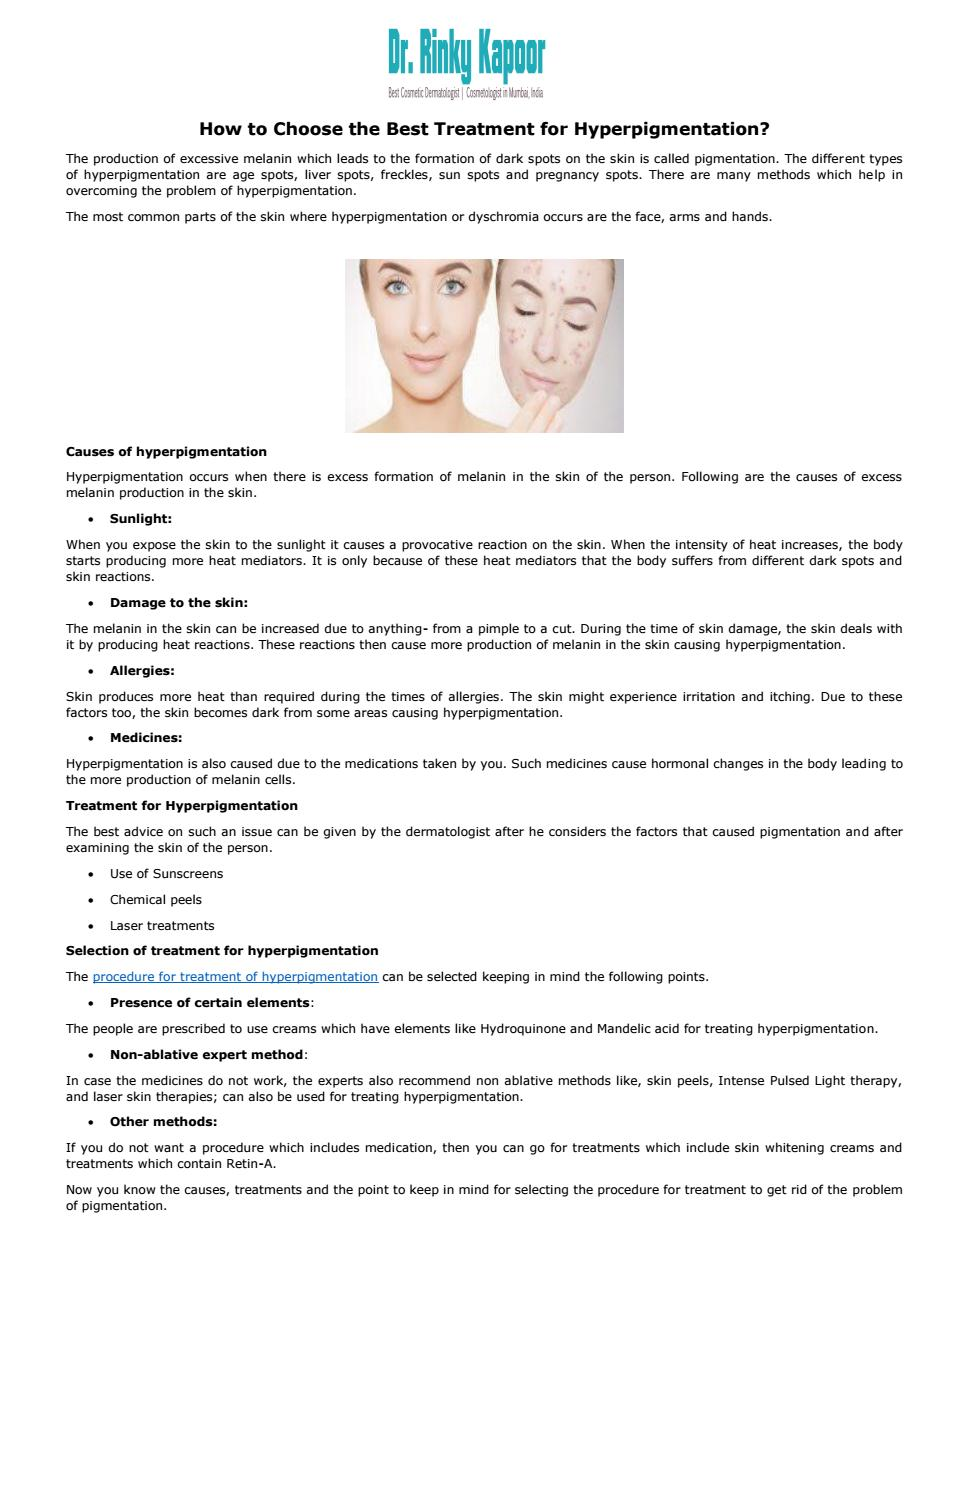 How to choose the best treatment for hyperpigmentation by Dr